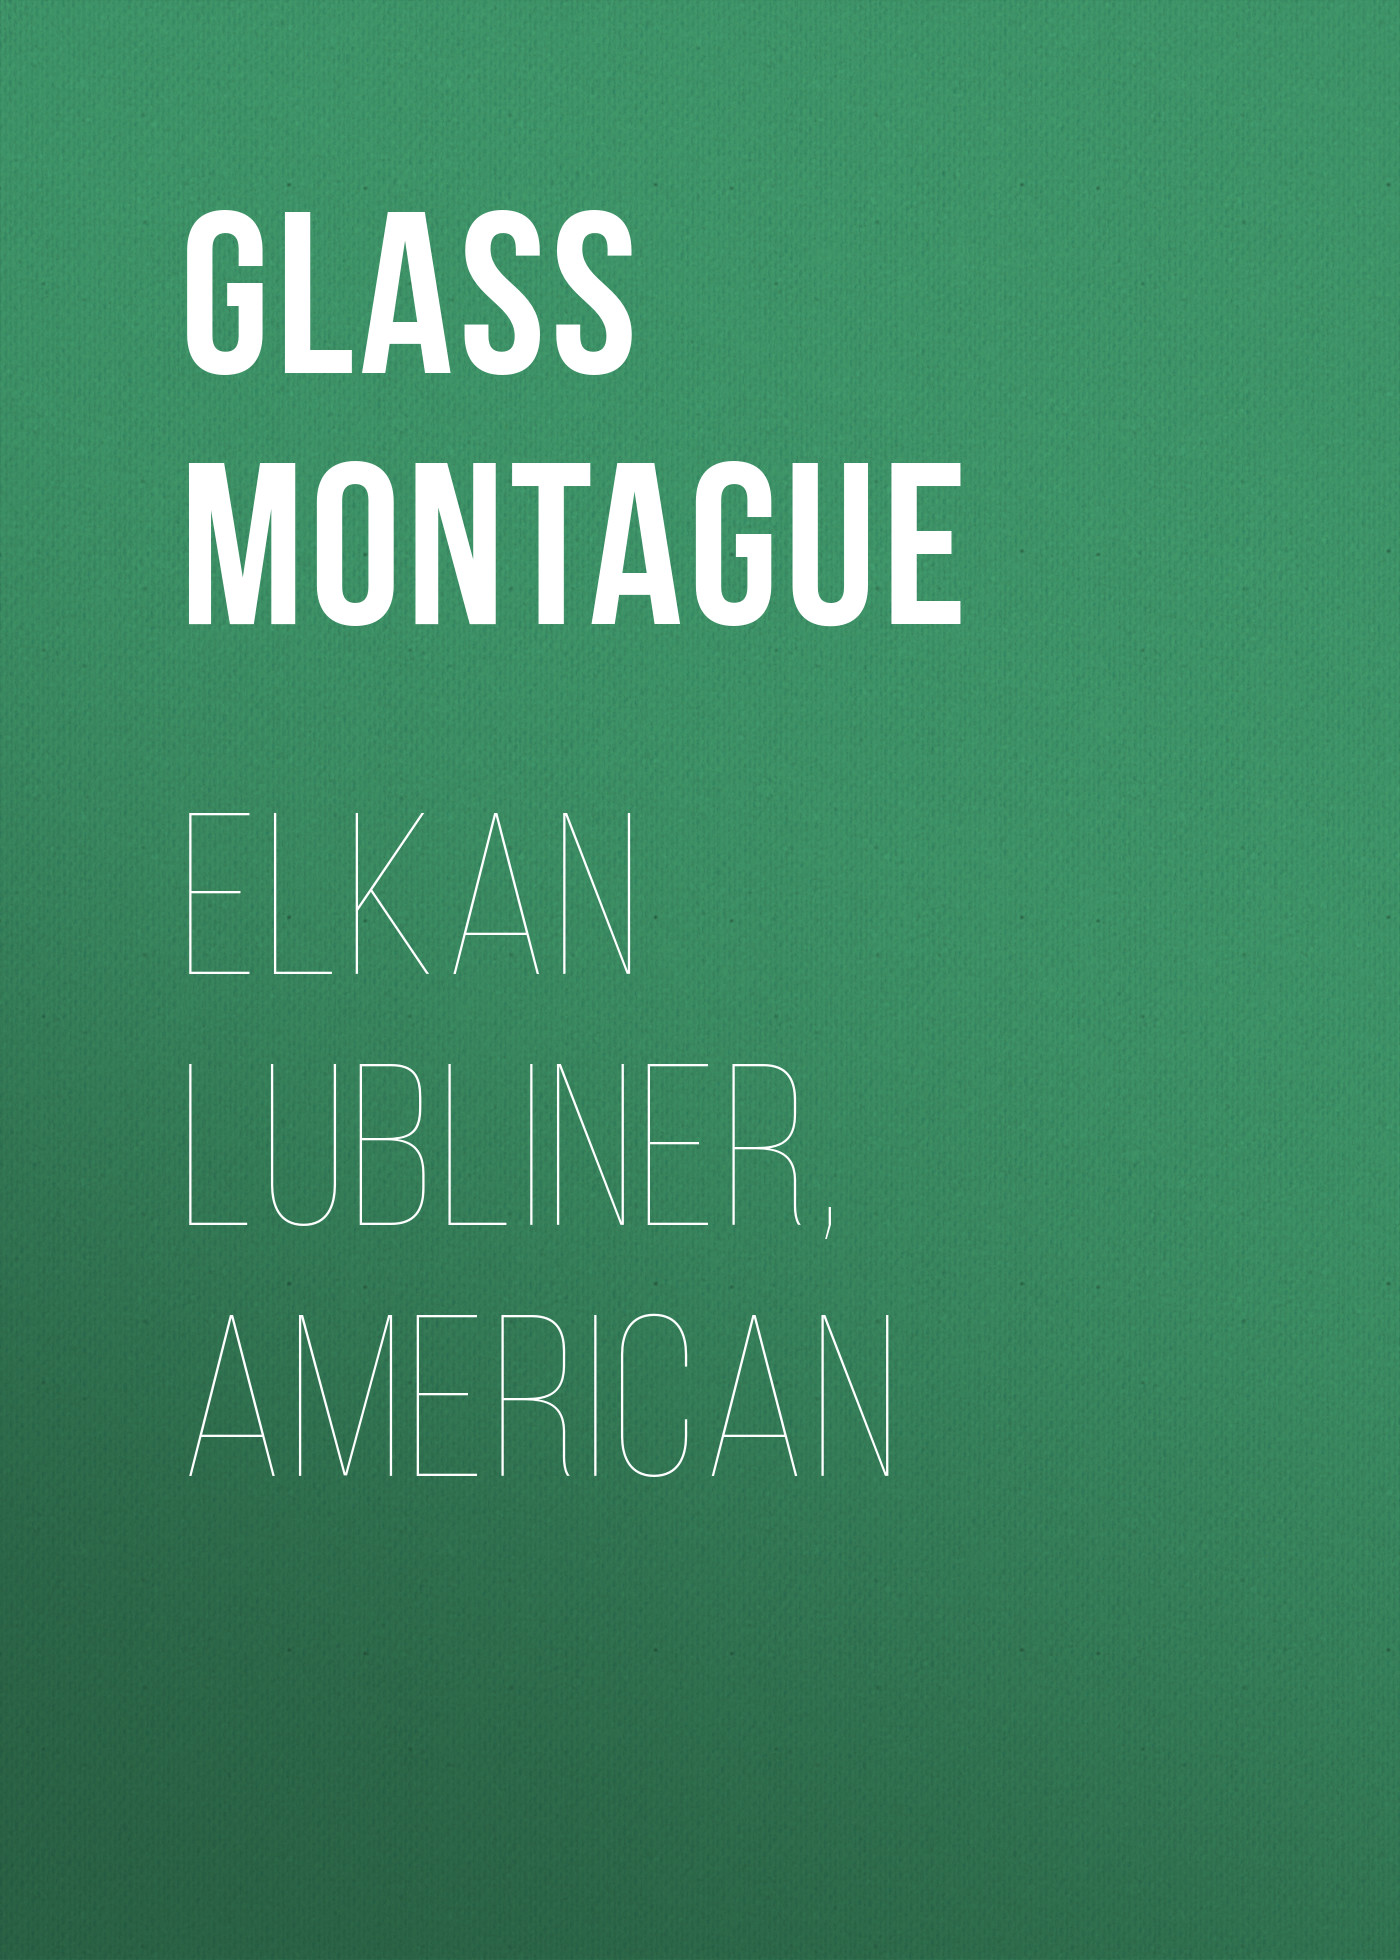 Glass Montague Elkan Lubliner, American цена